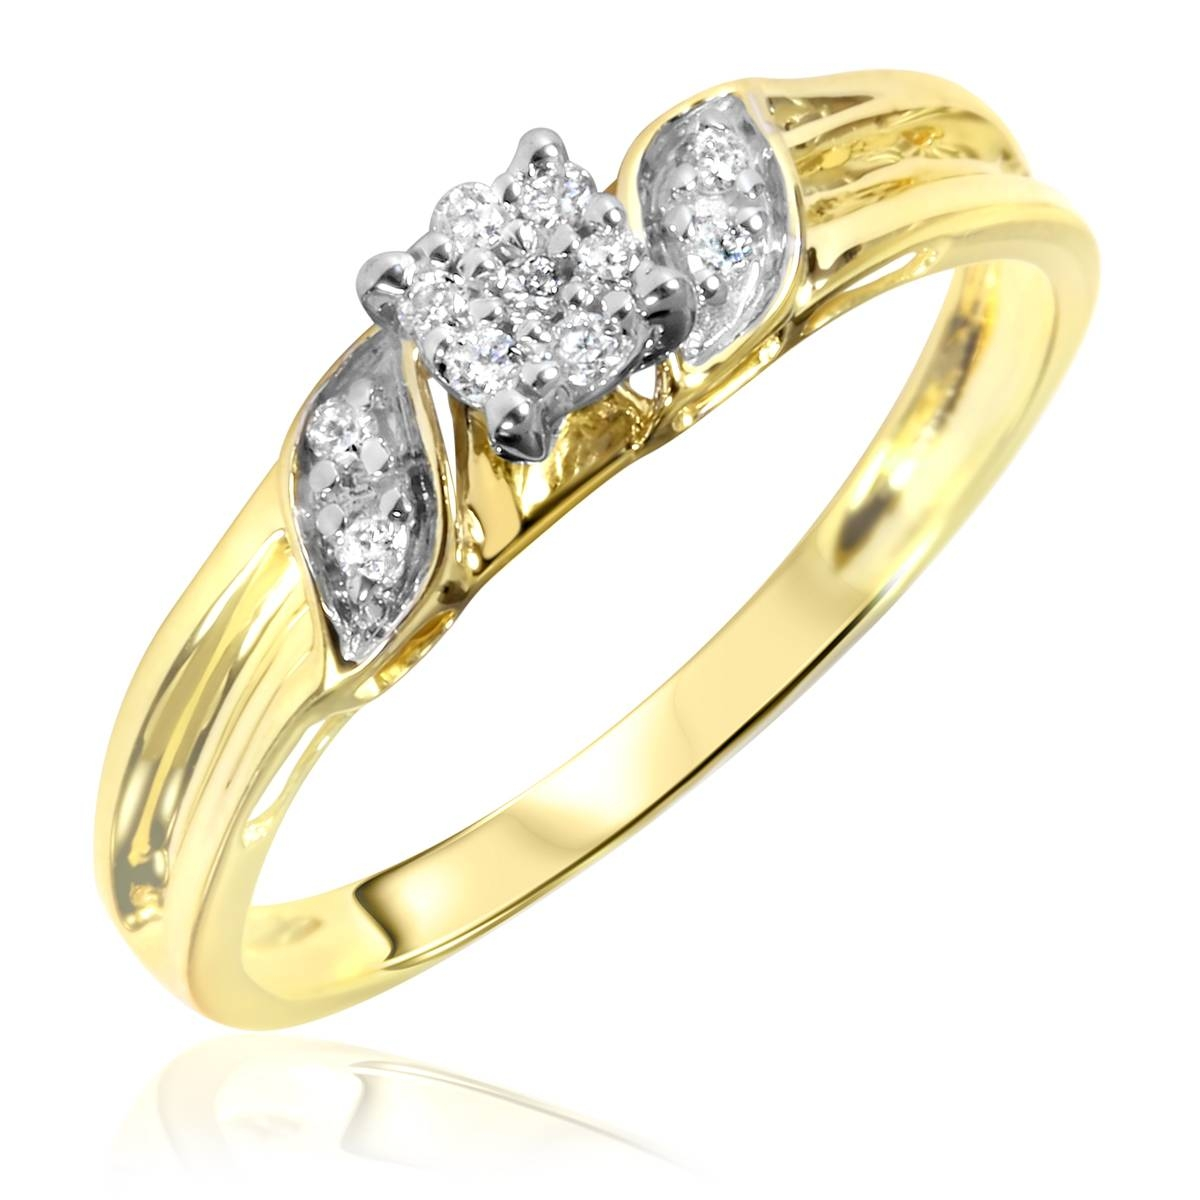 1/4 Carat Diamond Trio Wedding Ring Set 10K Yellow Gold Pertaining To Wedding And Engagement Ring Sets (Gallery 7 of 15)